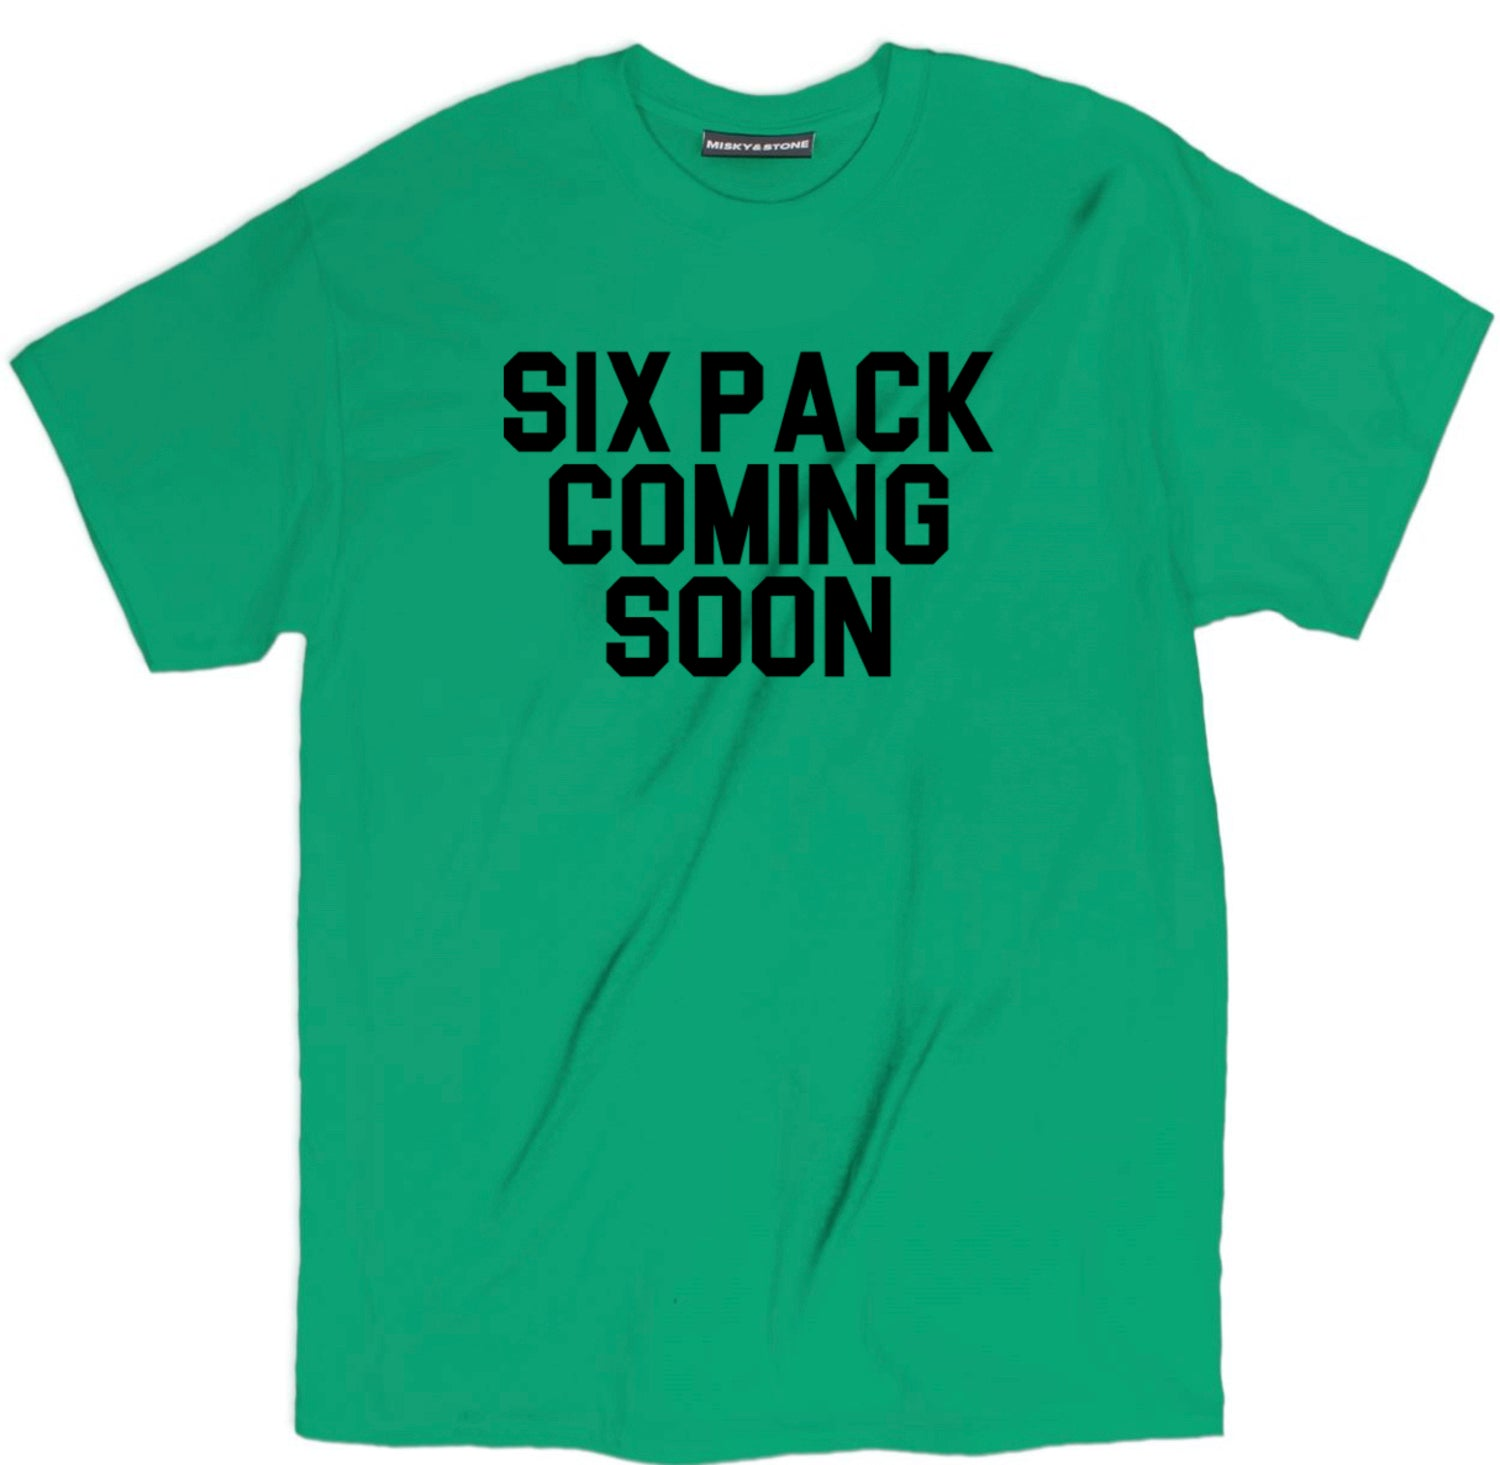 Six Pack Coming Tee